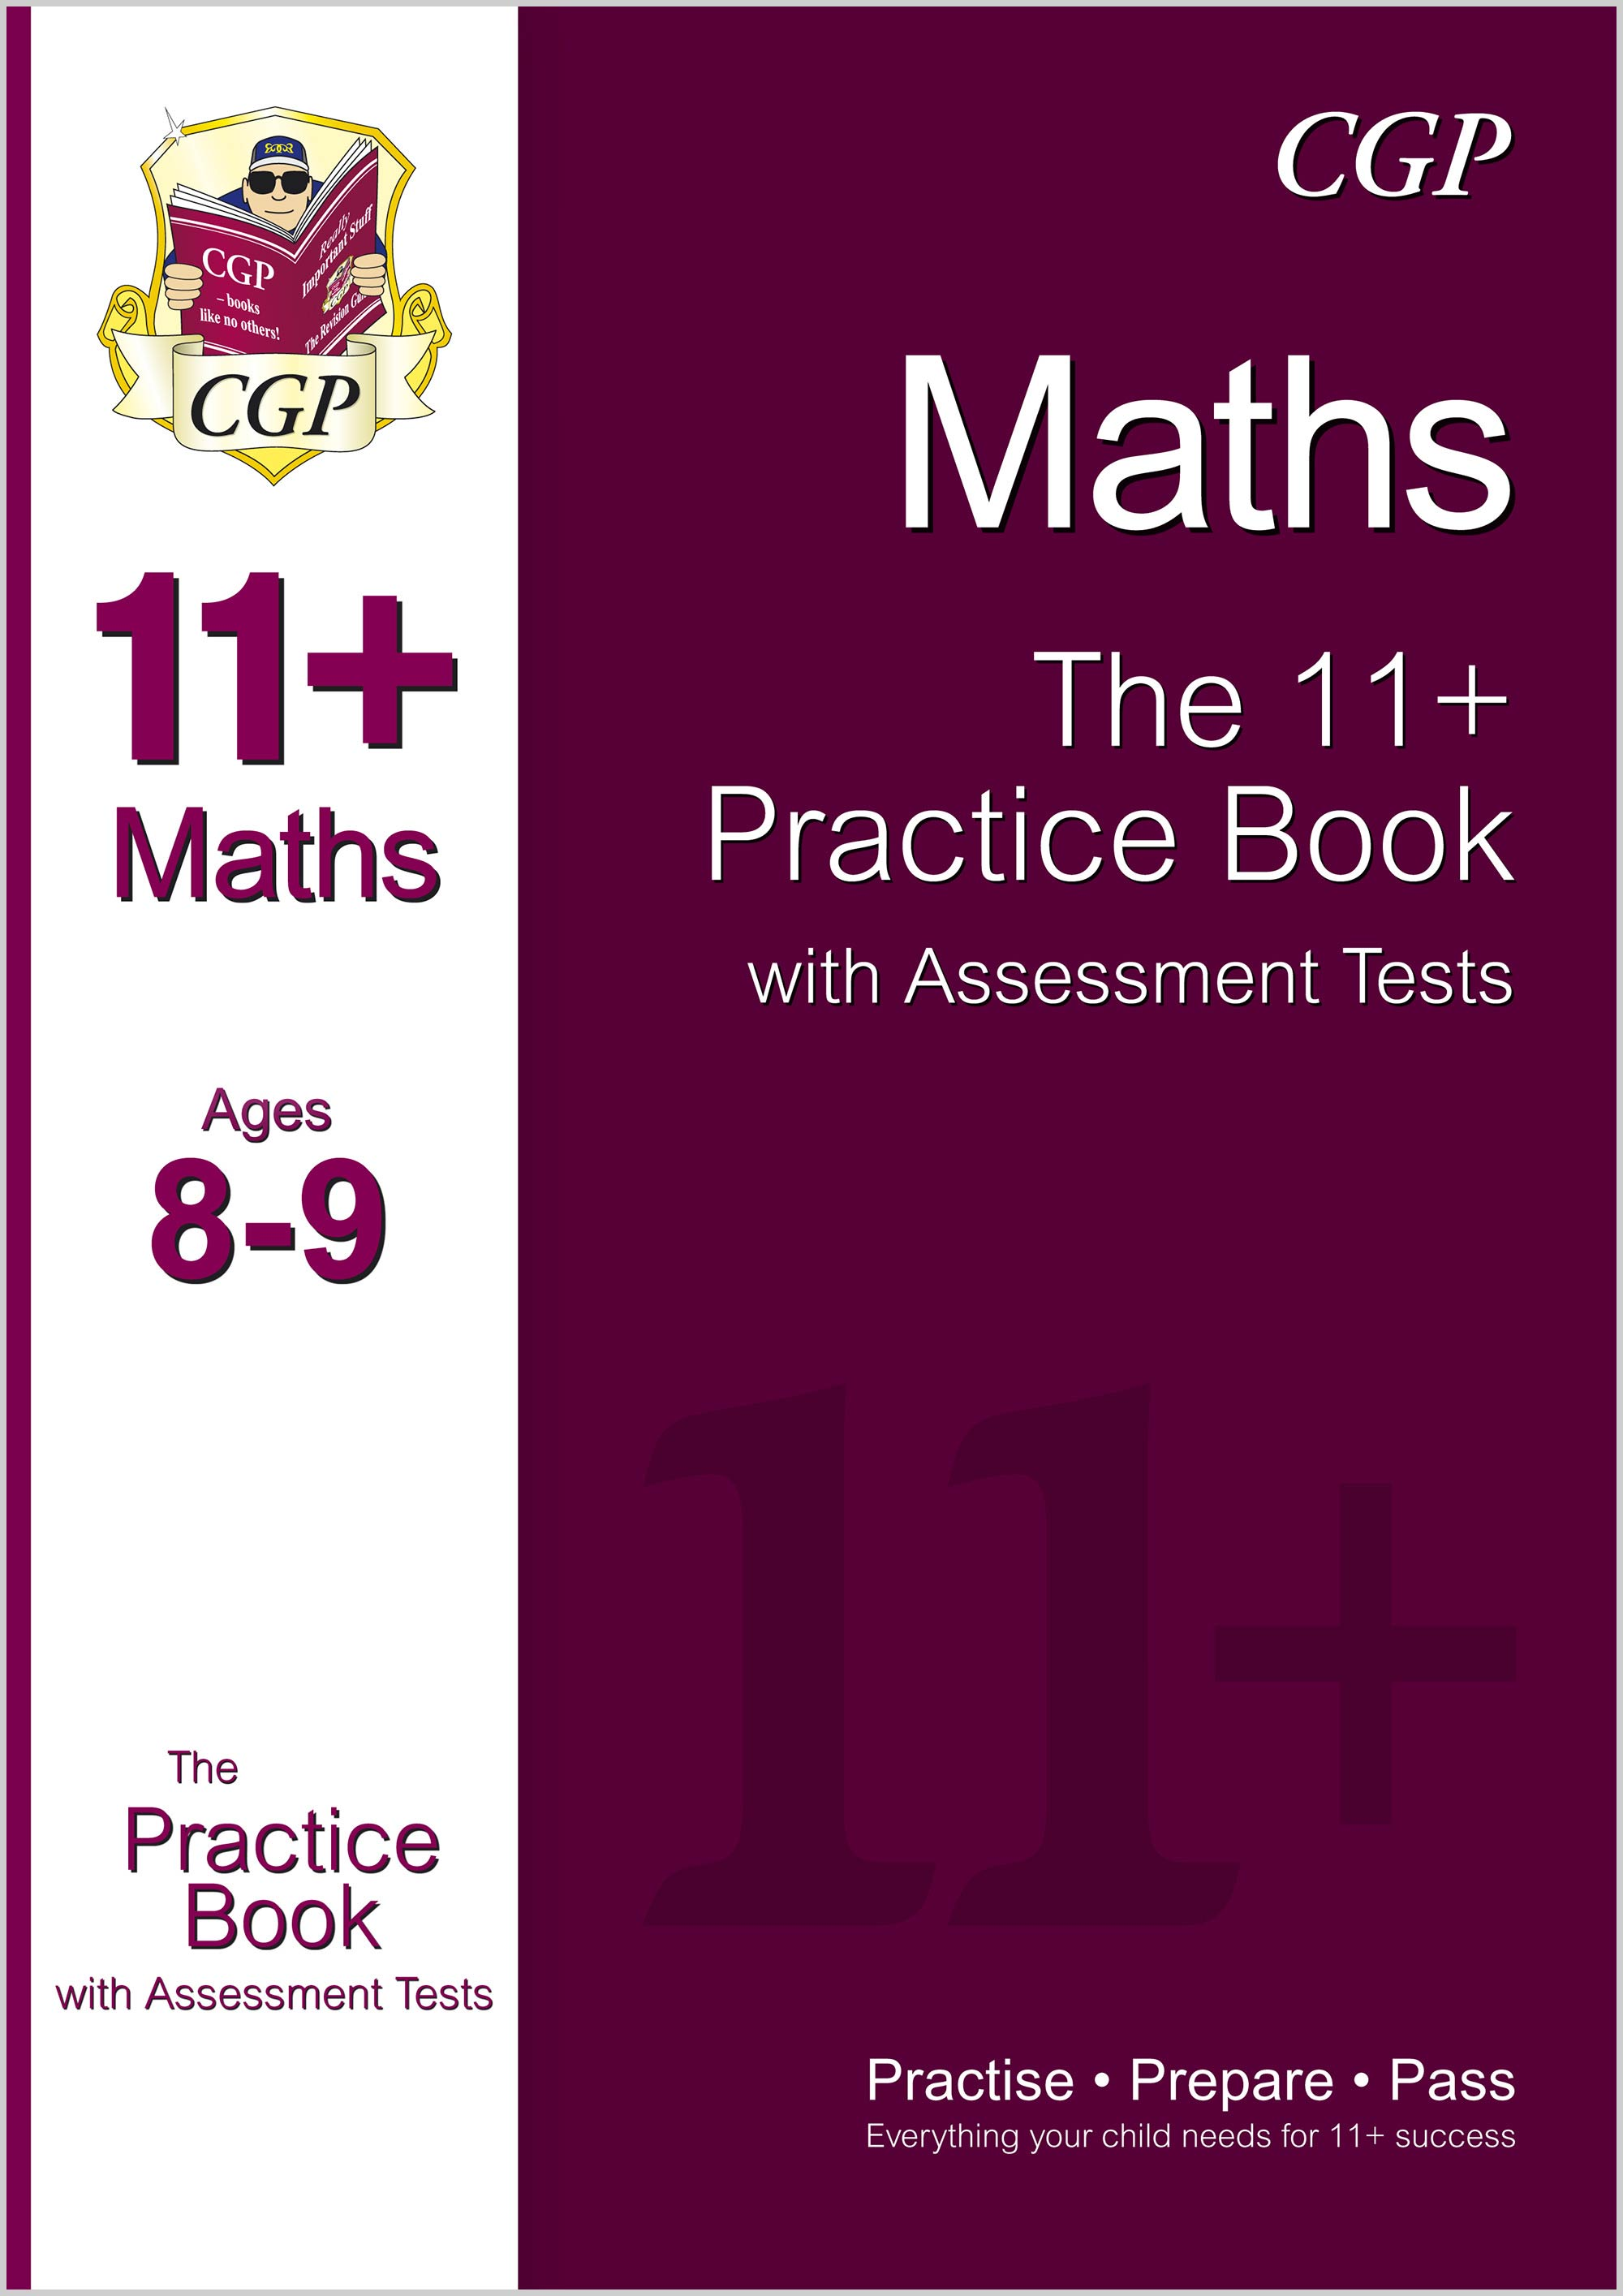 M4QE1 - 11+ Maths Practice Book with Assessment Tests Ages 8-9 (for GL & Other Test Providers)